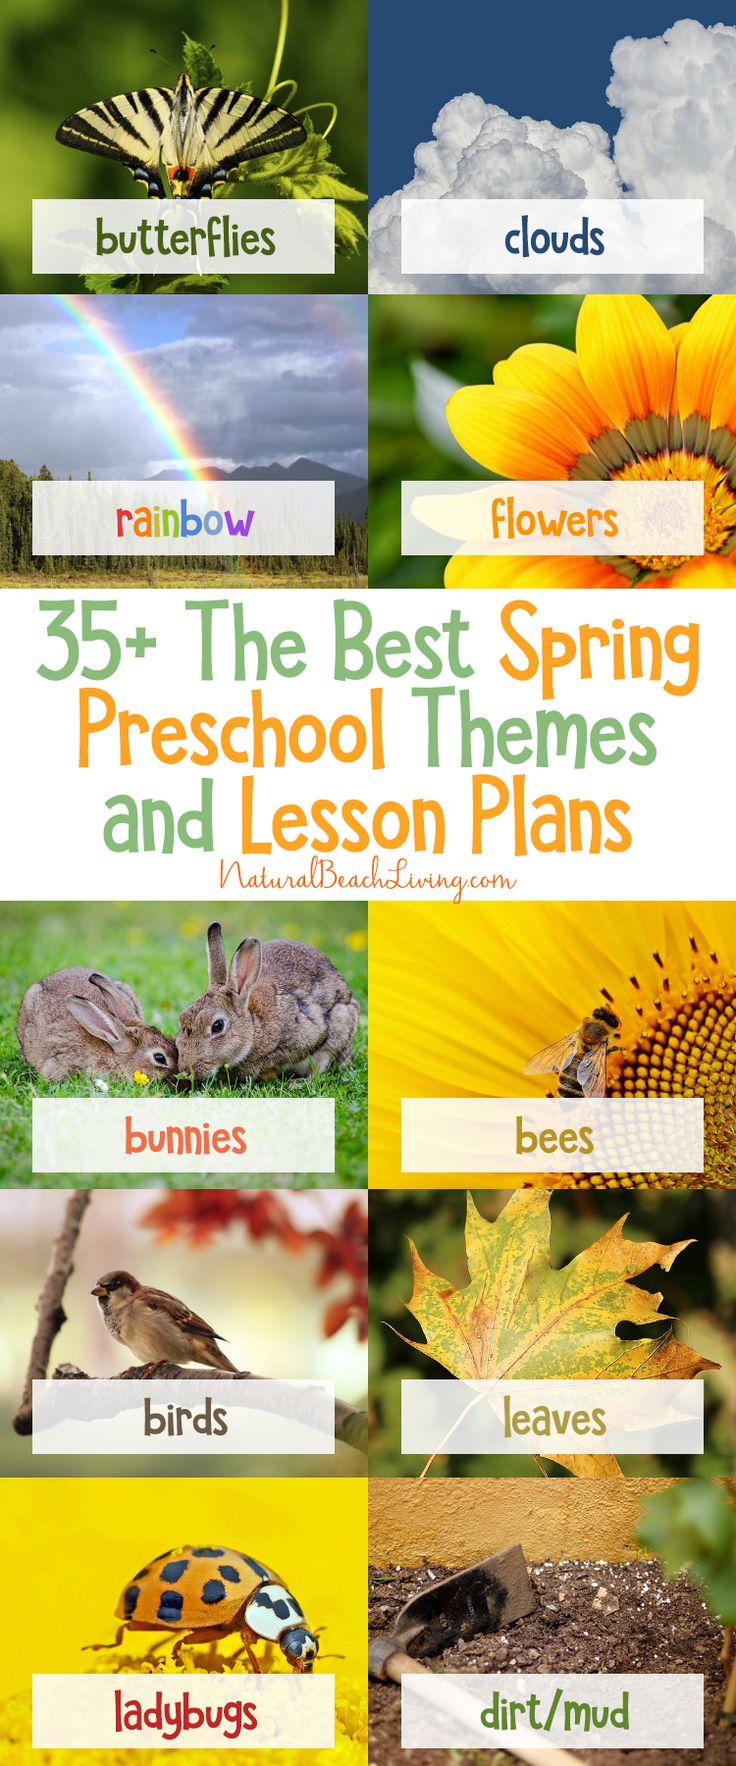 The Best Spring Preschool Themes and Lesson Plans, Free Printable, Life cycles, Flower activities, Farm, Preschool books, Pond Theme, Animal habitats